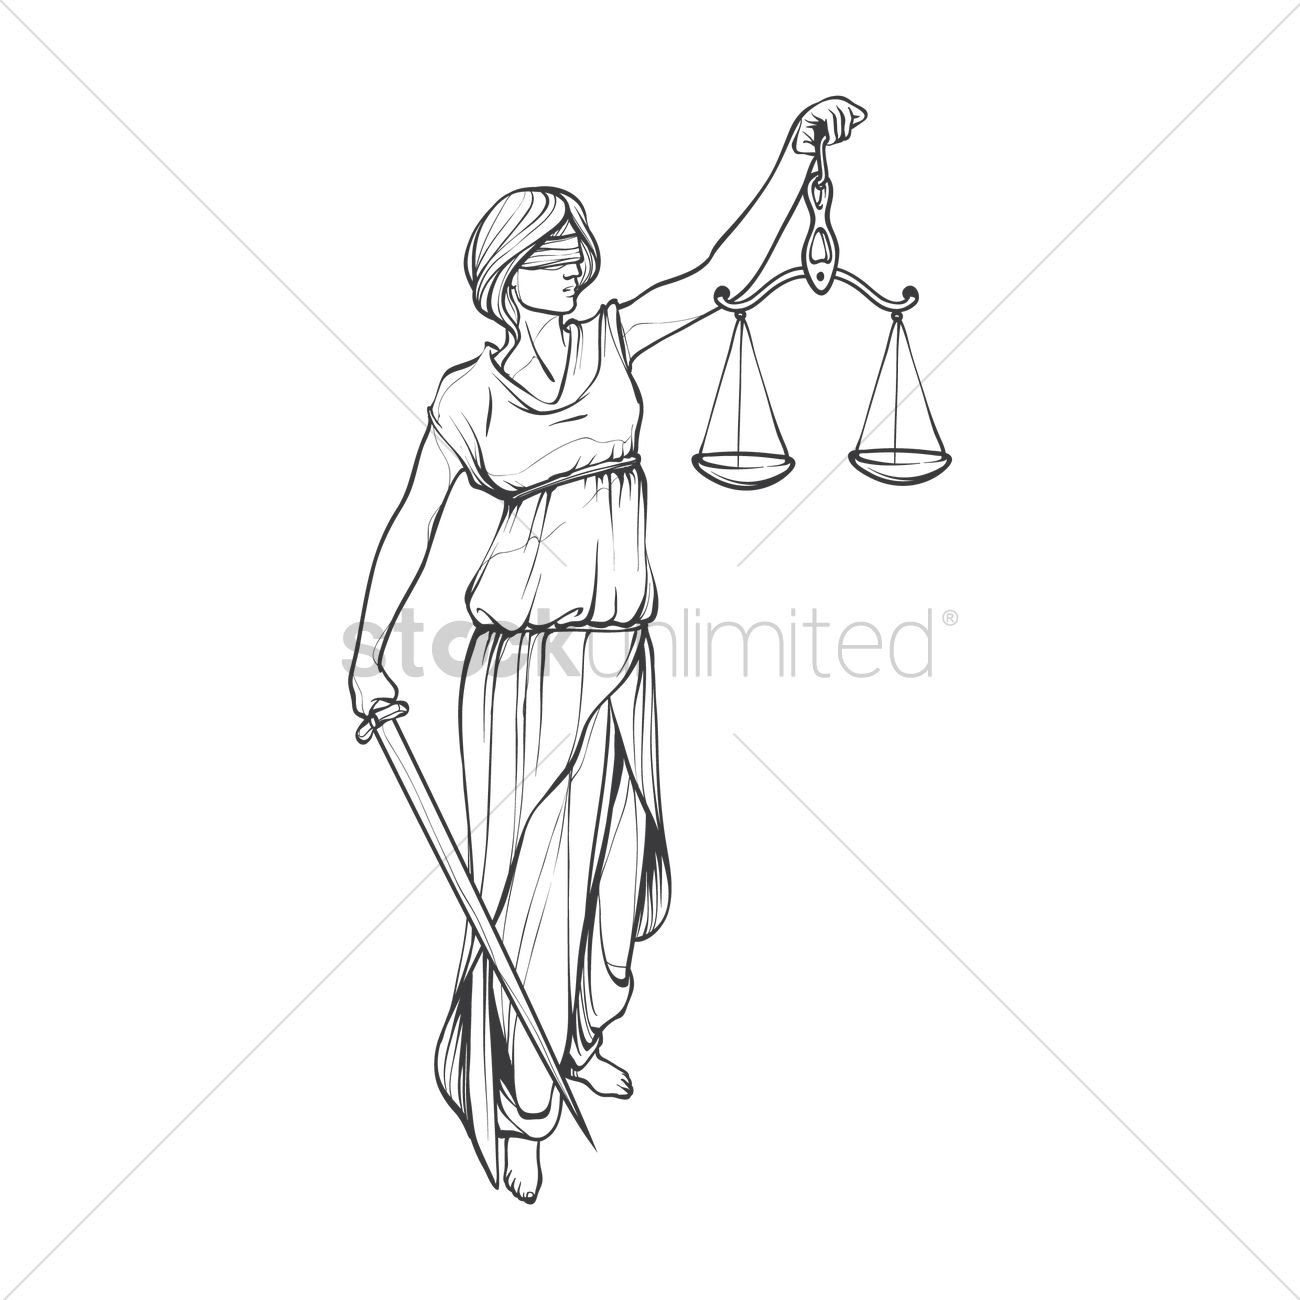 Lady justice statue vector image 1989339 stockunlimited lady justice statue vector graphic buycottarizona